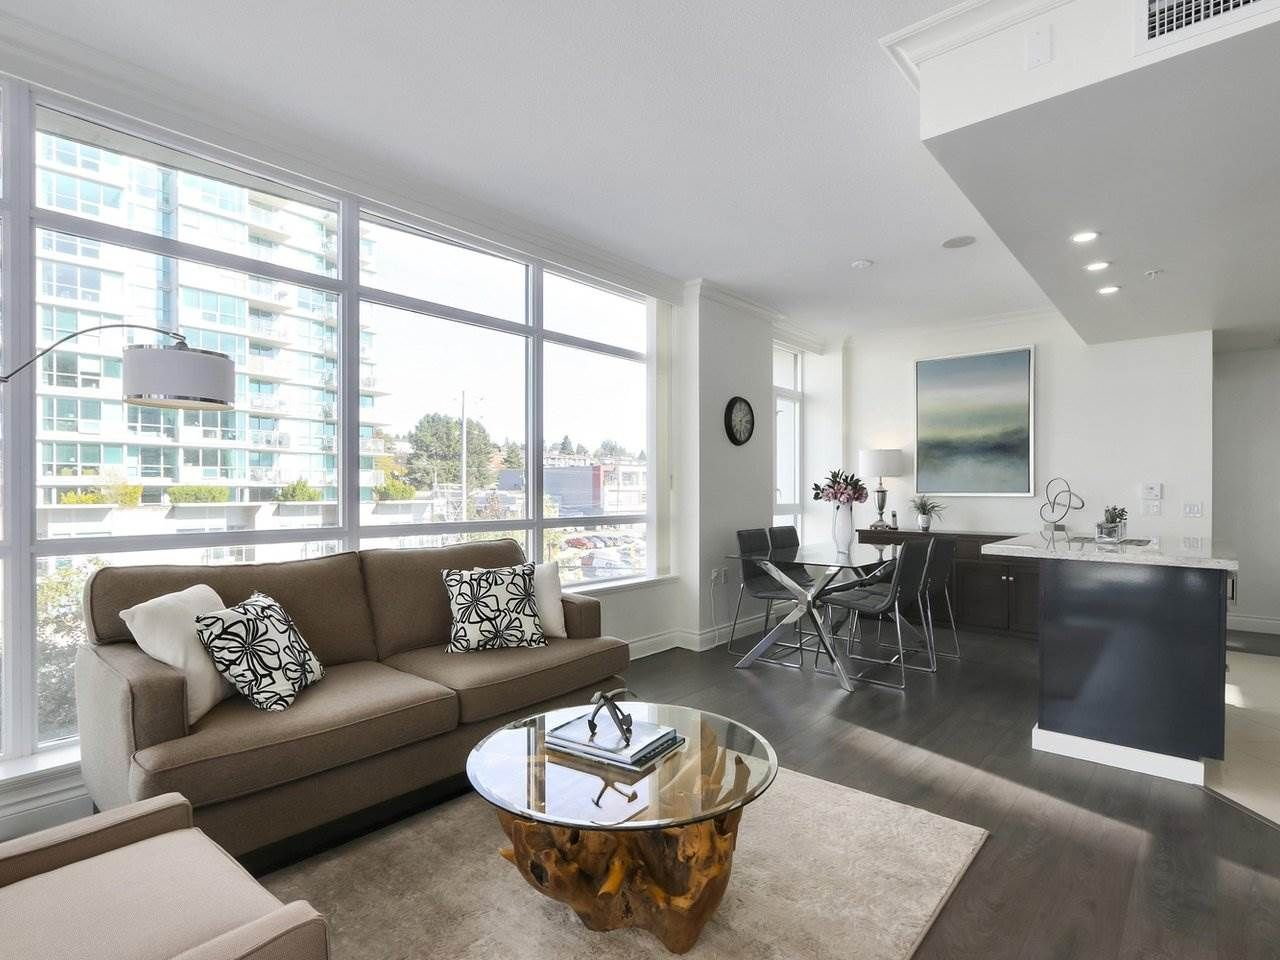 """Photo 4: Photos: 608 172 VICTORY SHIP Way in North Vancouver: Lower Lonsdale Condo for sale in """"Atrium at the Pier"""" : MLS®# R2454404"""